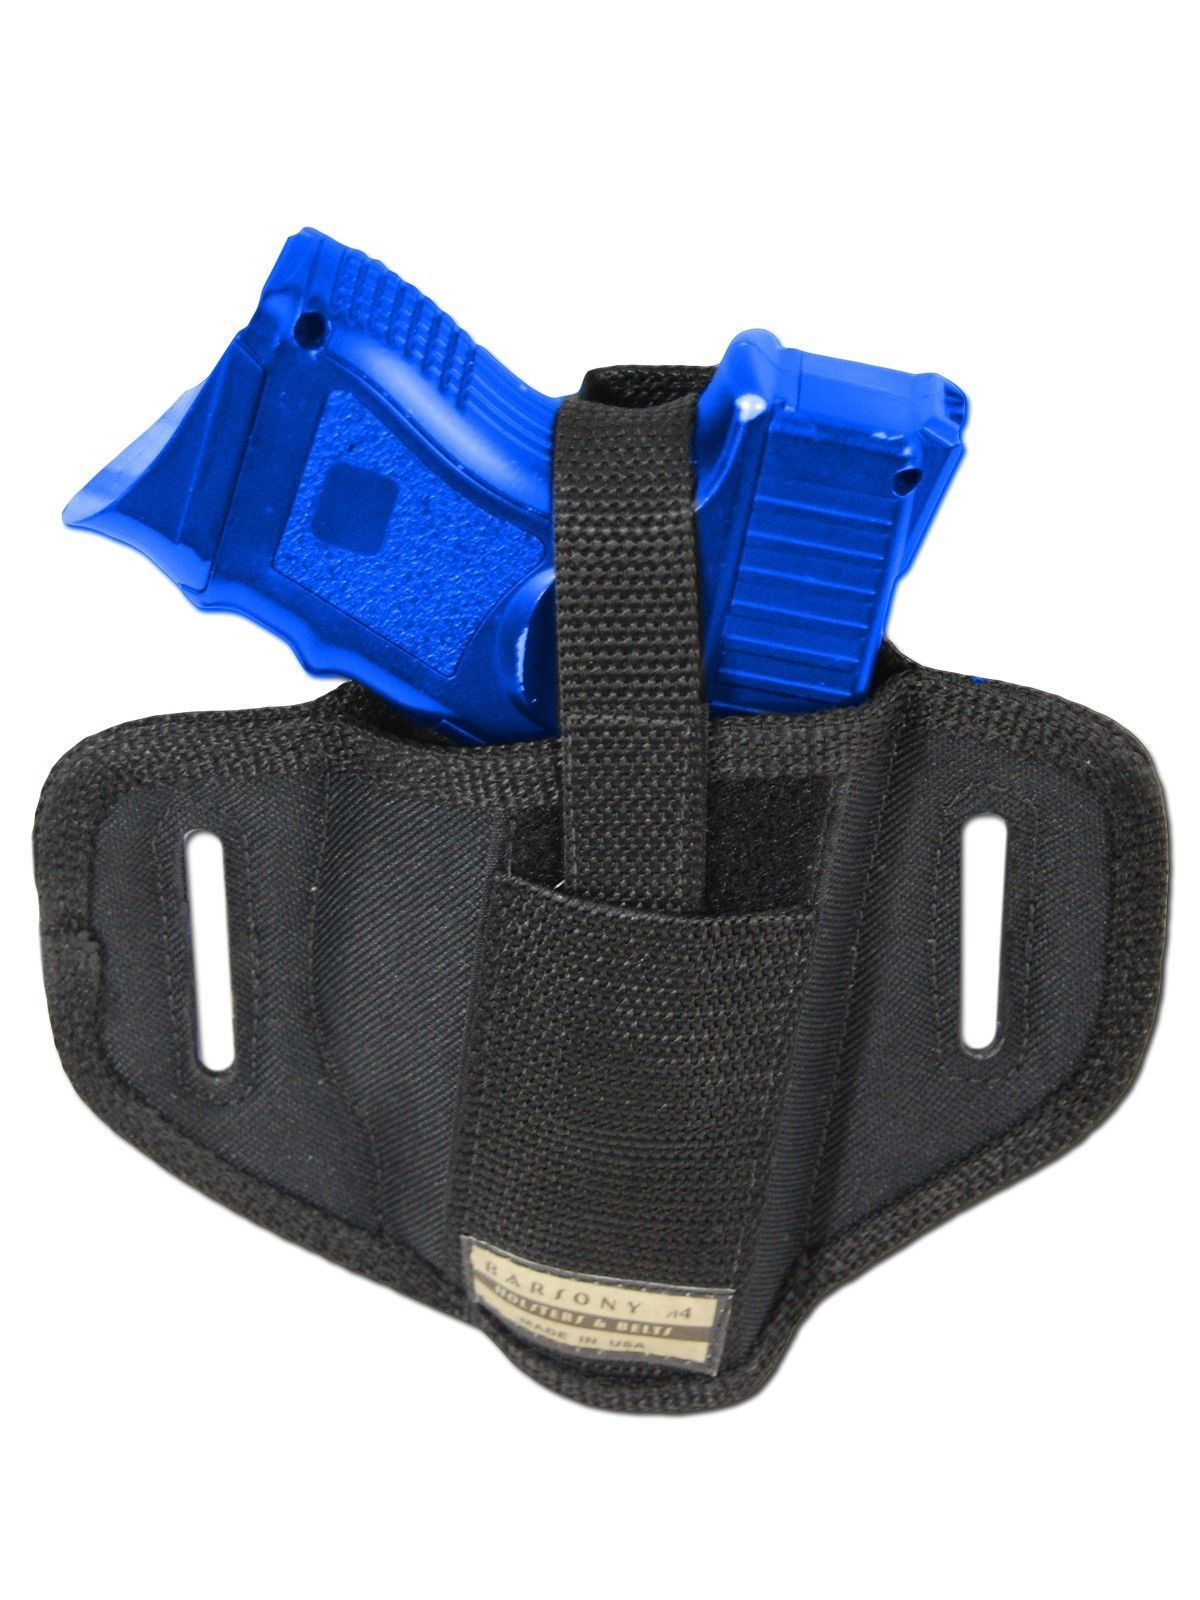 New Barsony 6 Position Ambi Pancake Holster for Springfield Compact 9mm 40 45